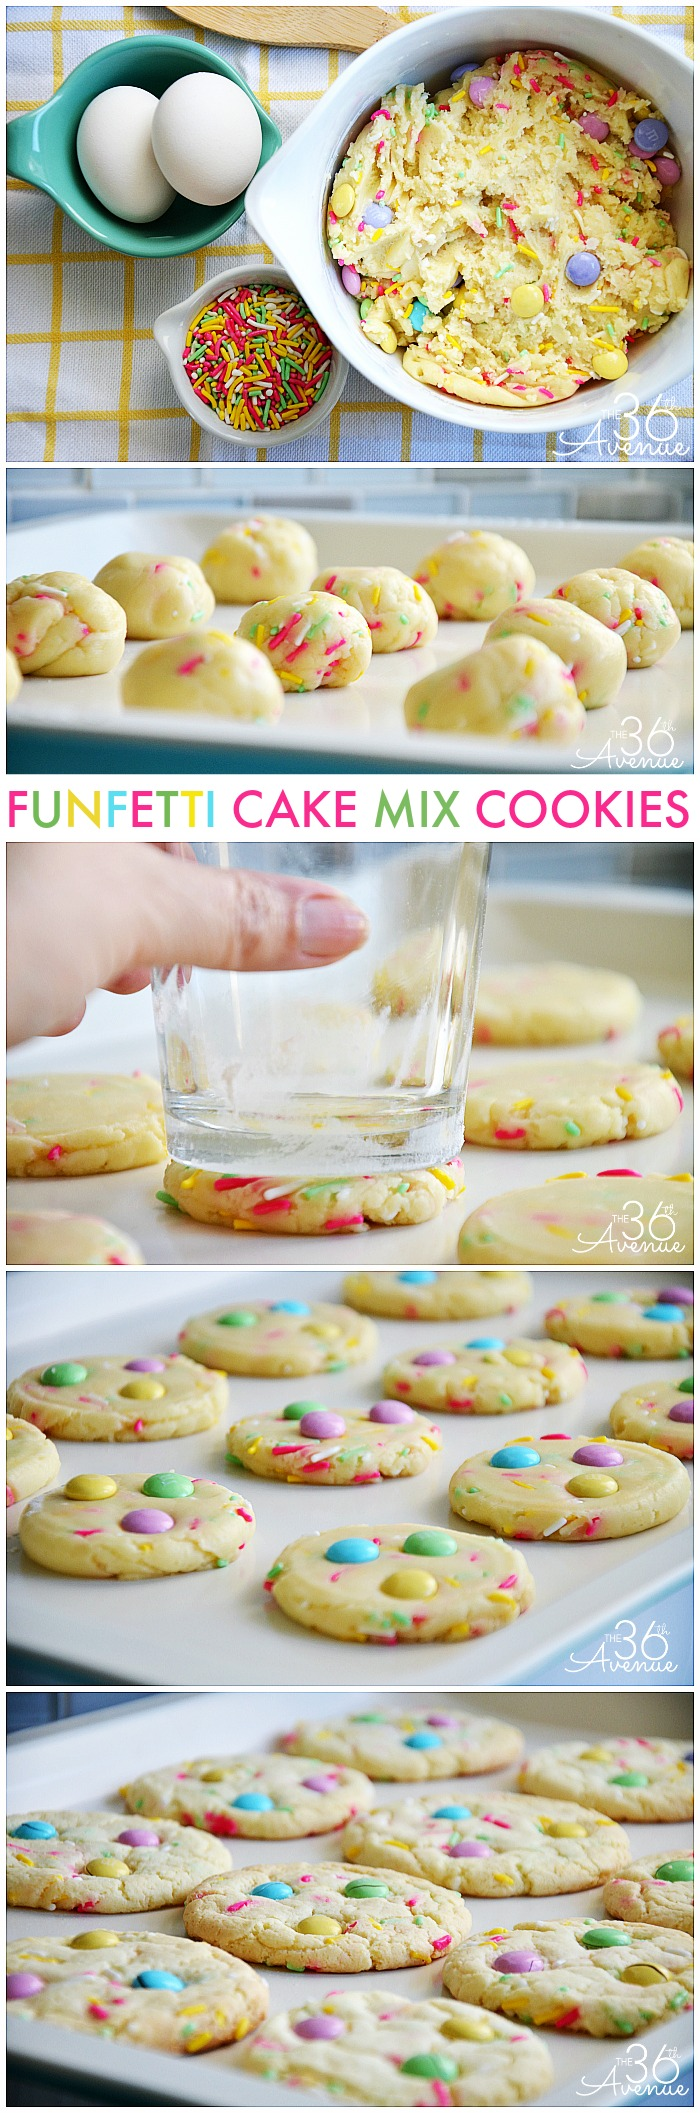 Funfetti Cake Mix Cookie Recipe at the36thavenue.com